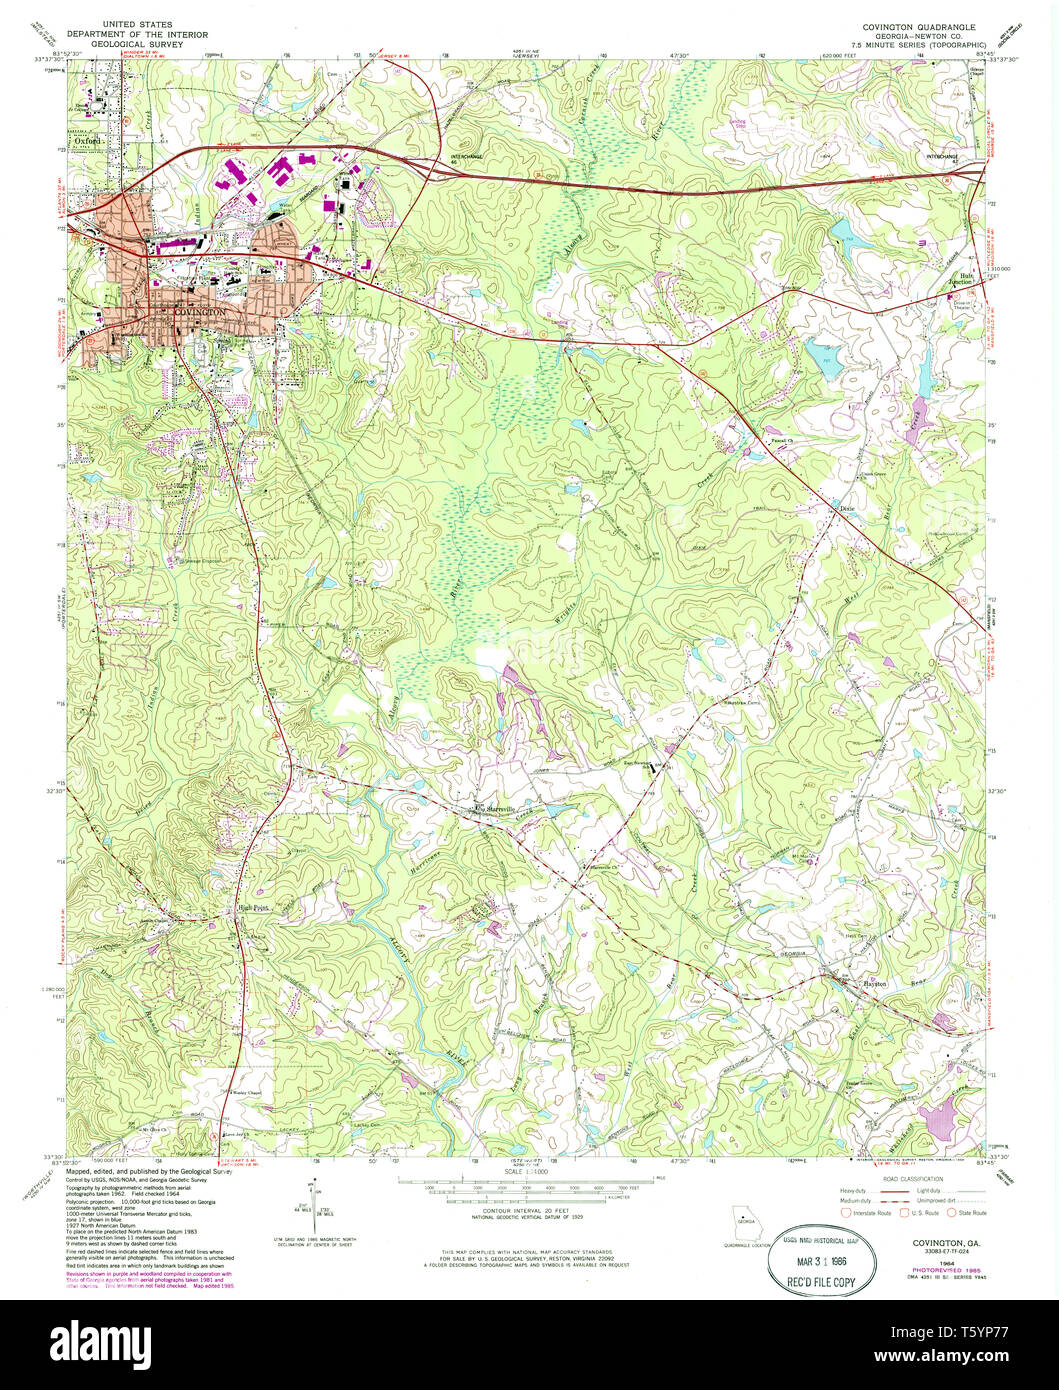 Show A Map Of Georgia.Usgs Topo Map Georgia Ga Covington 245416 1964 24000 Restoration